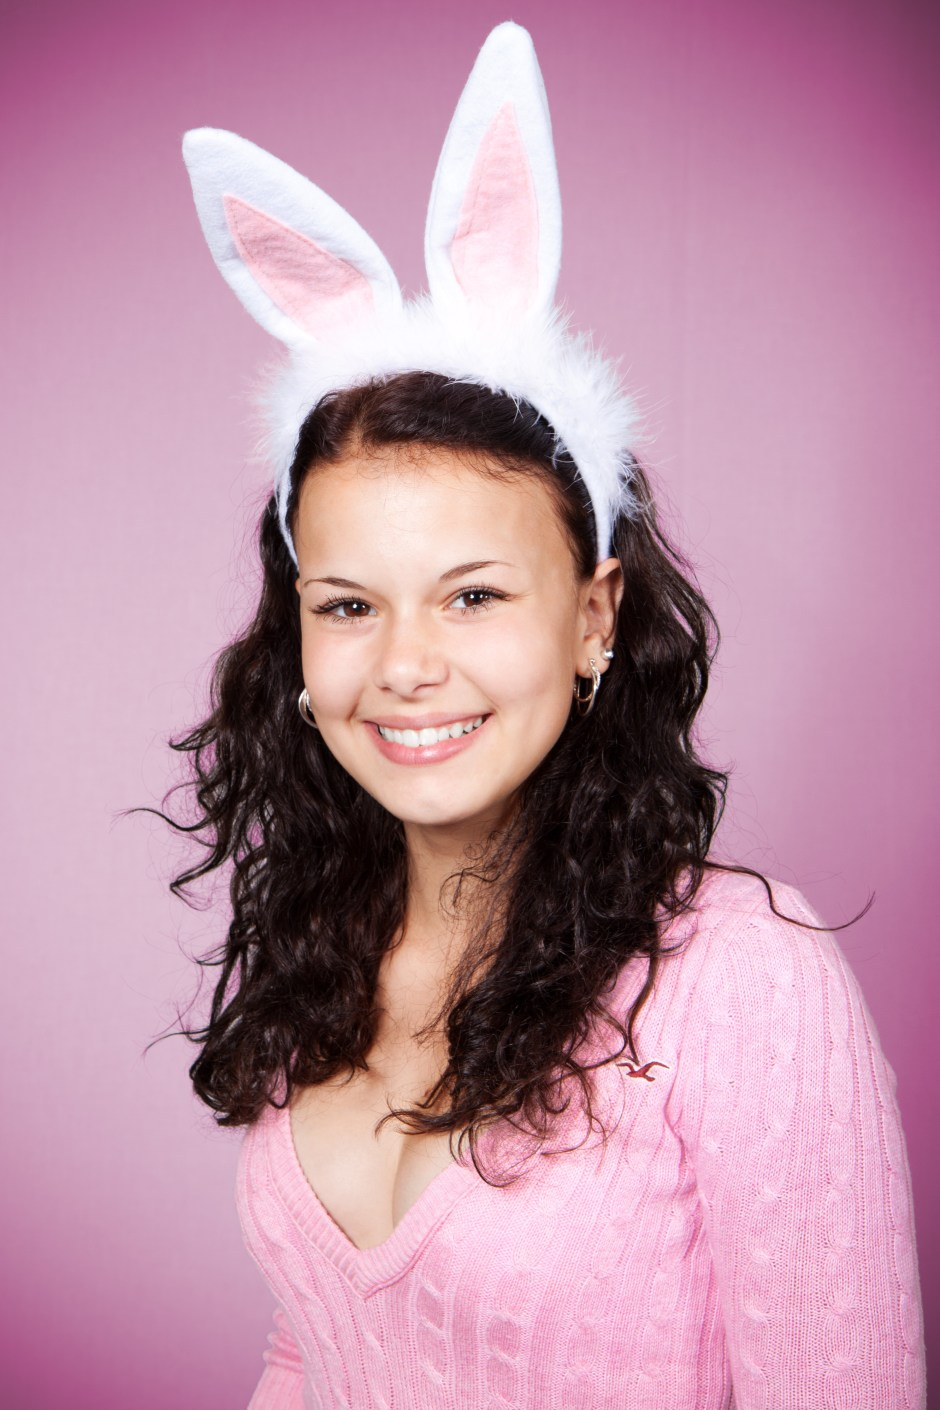 Wallpapers Anime Girl Woman In Pink Sweater Wearing Bunny Headband Smiling